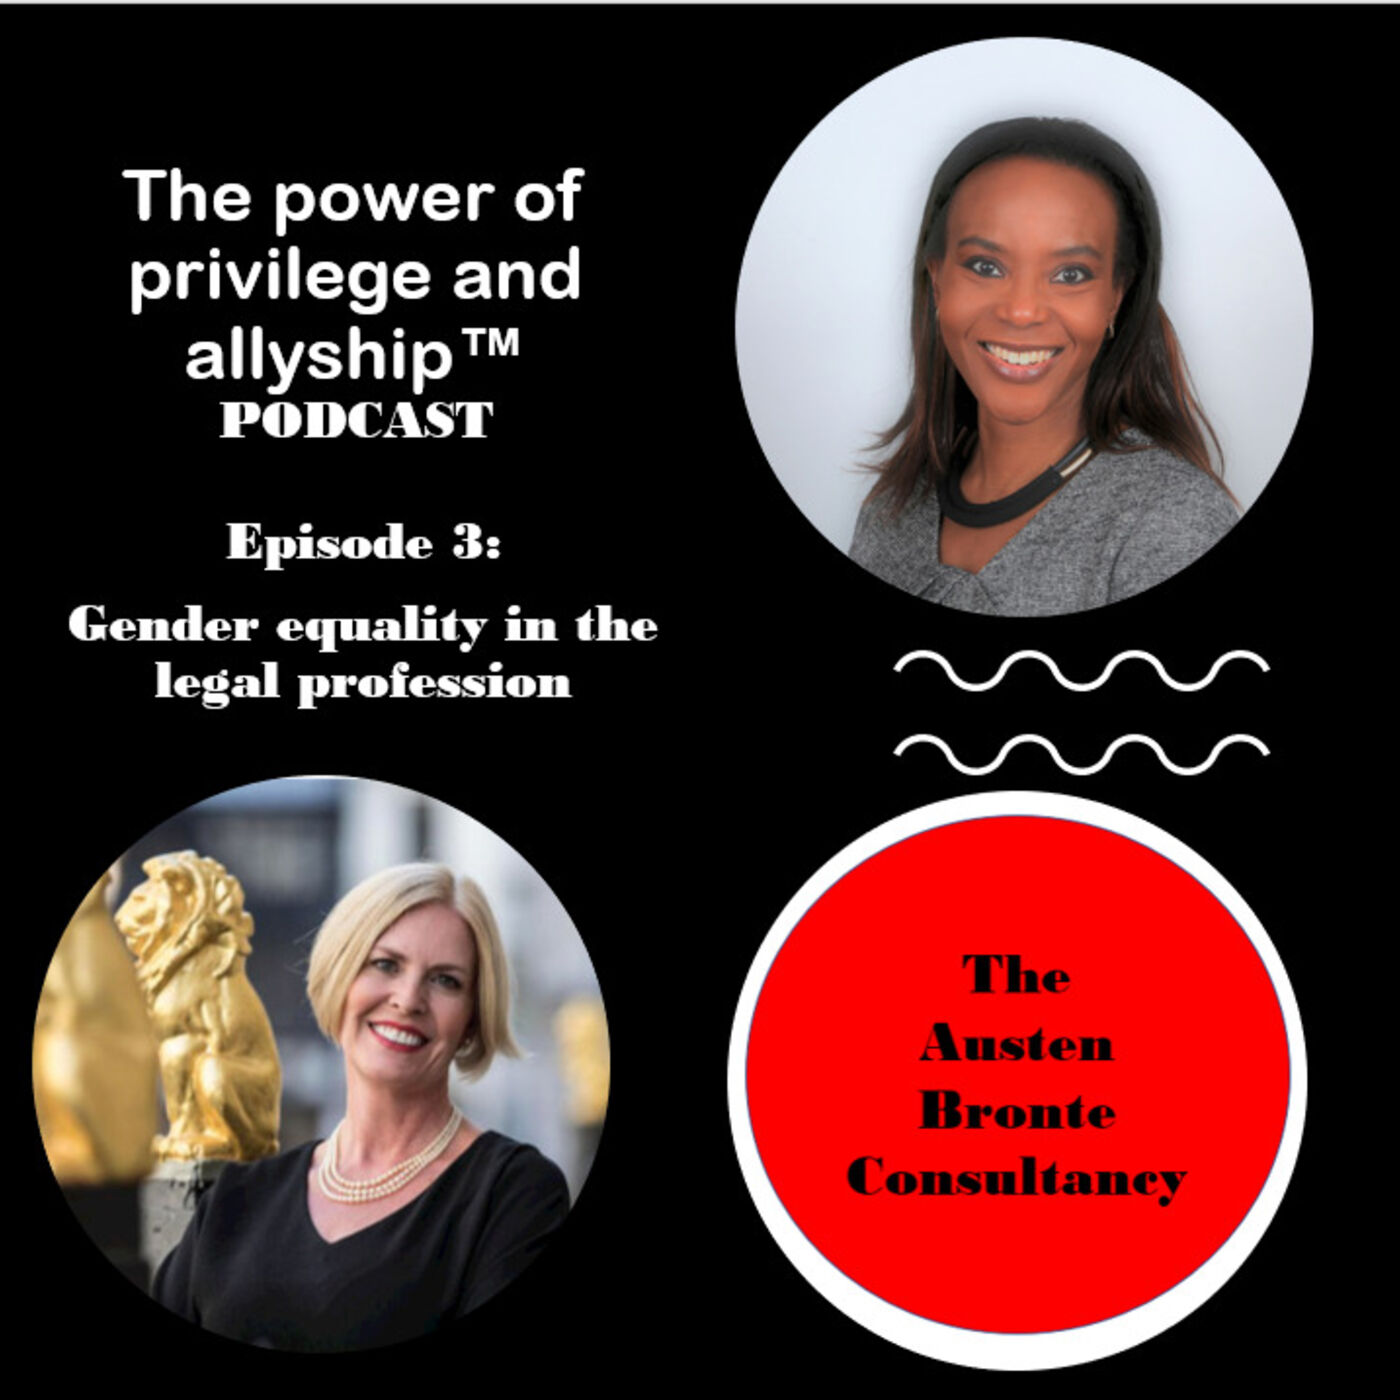 S1 Ep3: Gender equality in the legal profession feat. Christina Blacklaws